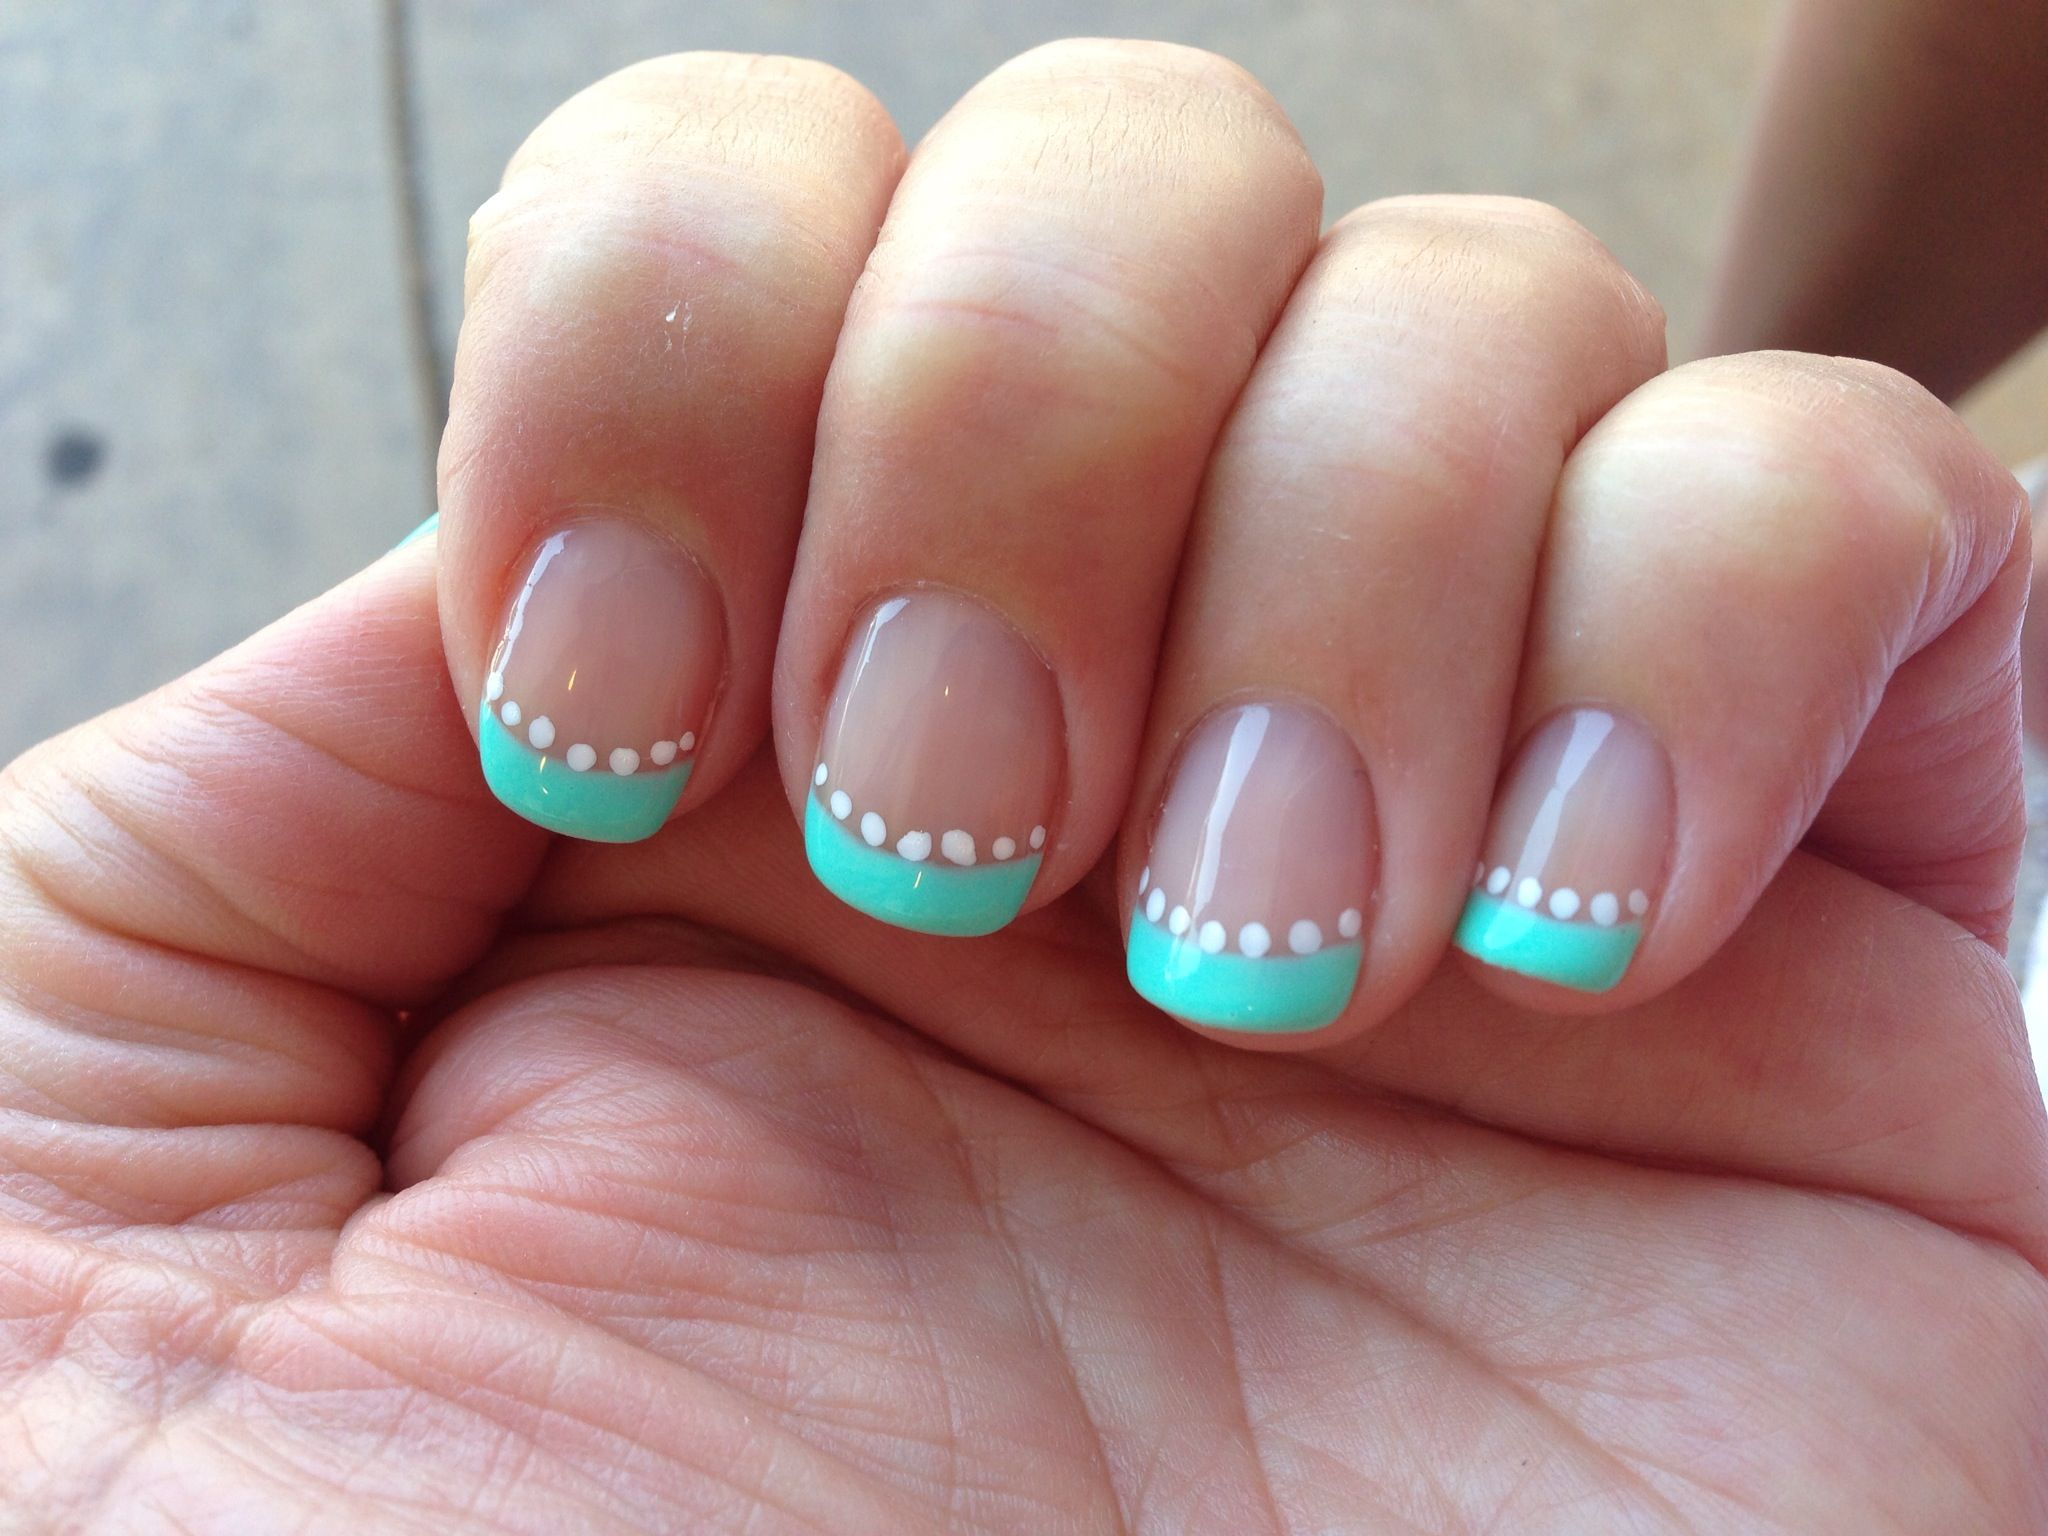 I love my new mint green french manicure with white polka dots ...